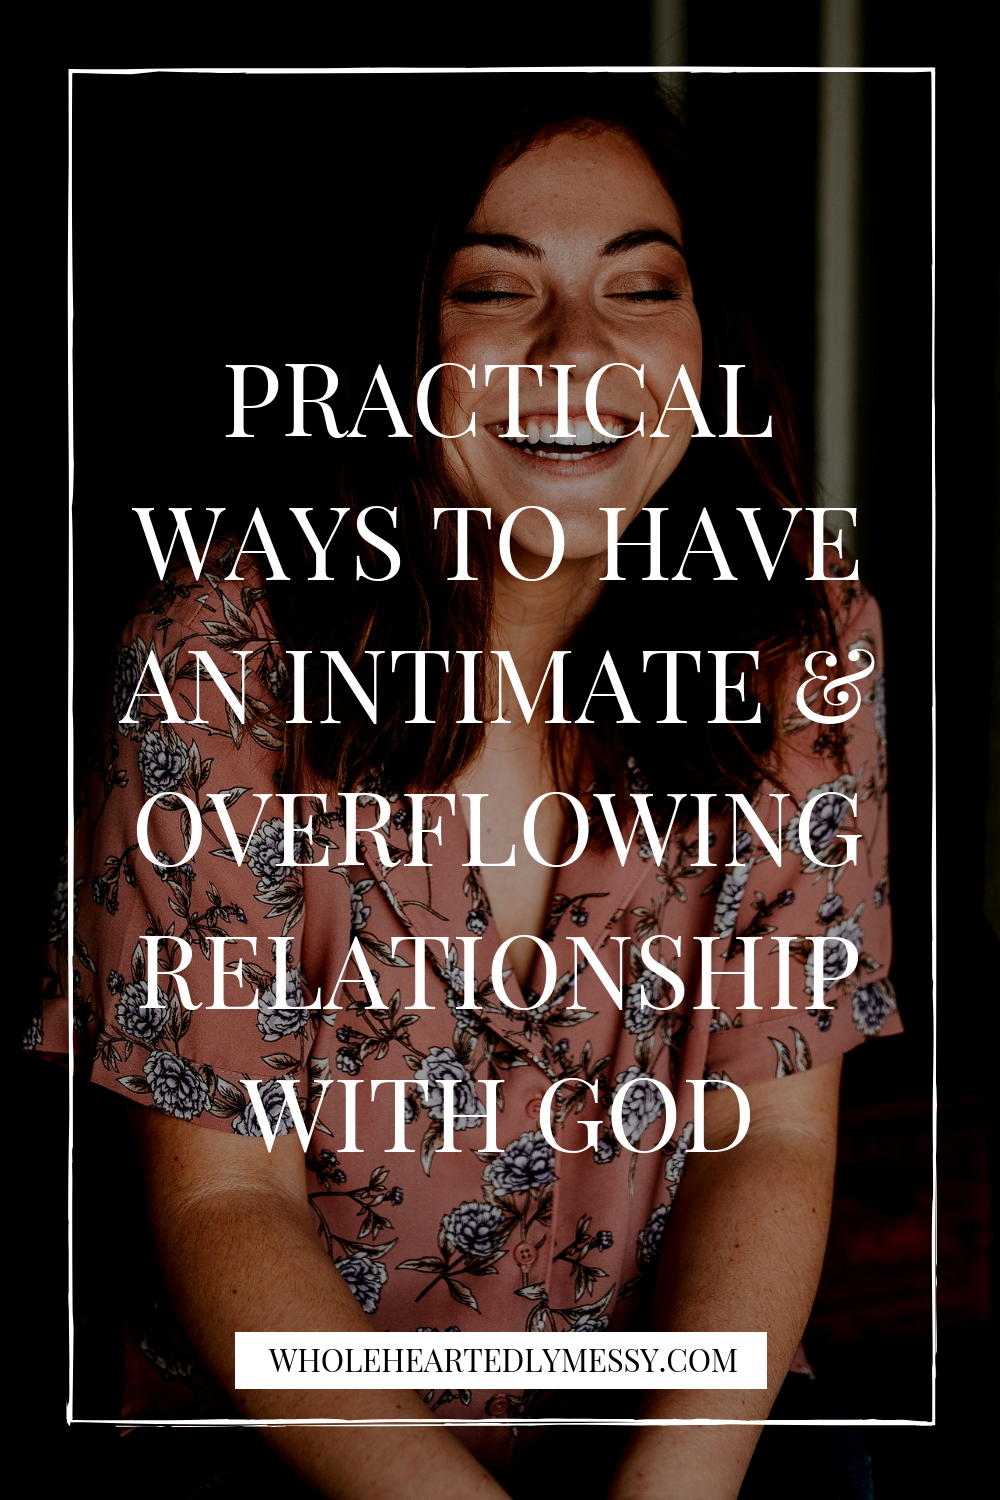 OVERFLOWING RELATIONSHIP WITH God.png